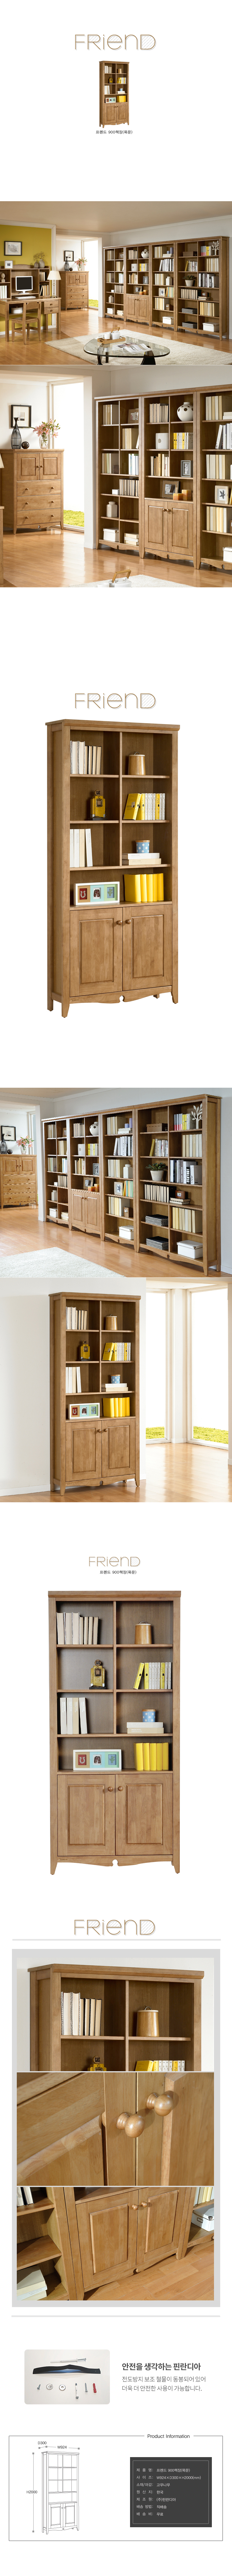 900bookcase_door.jpg